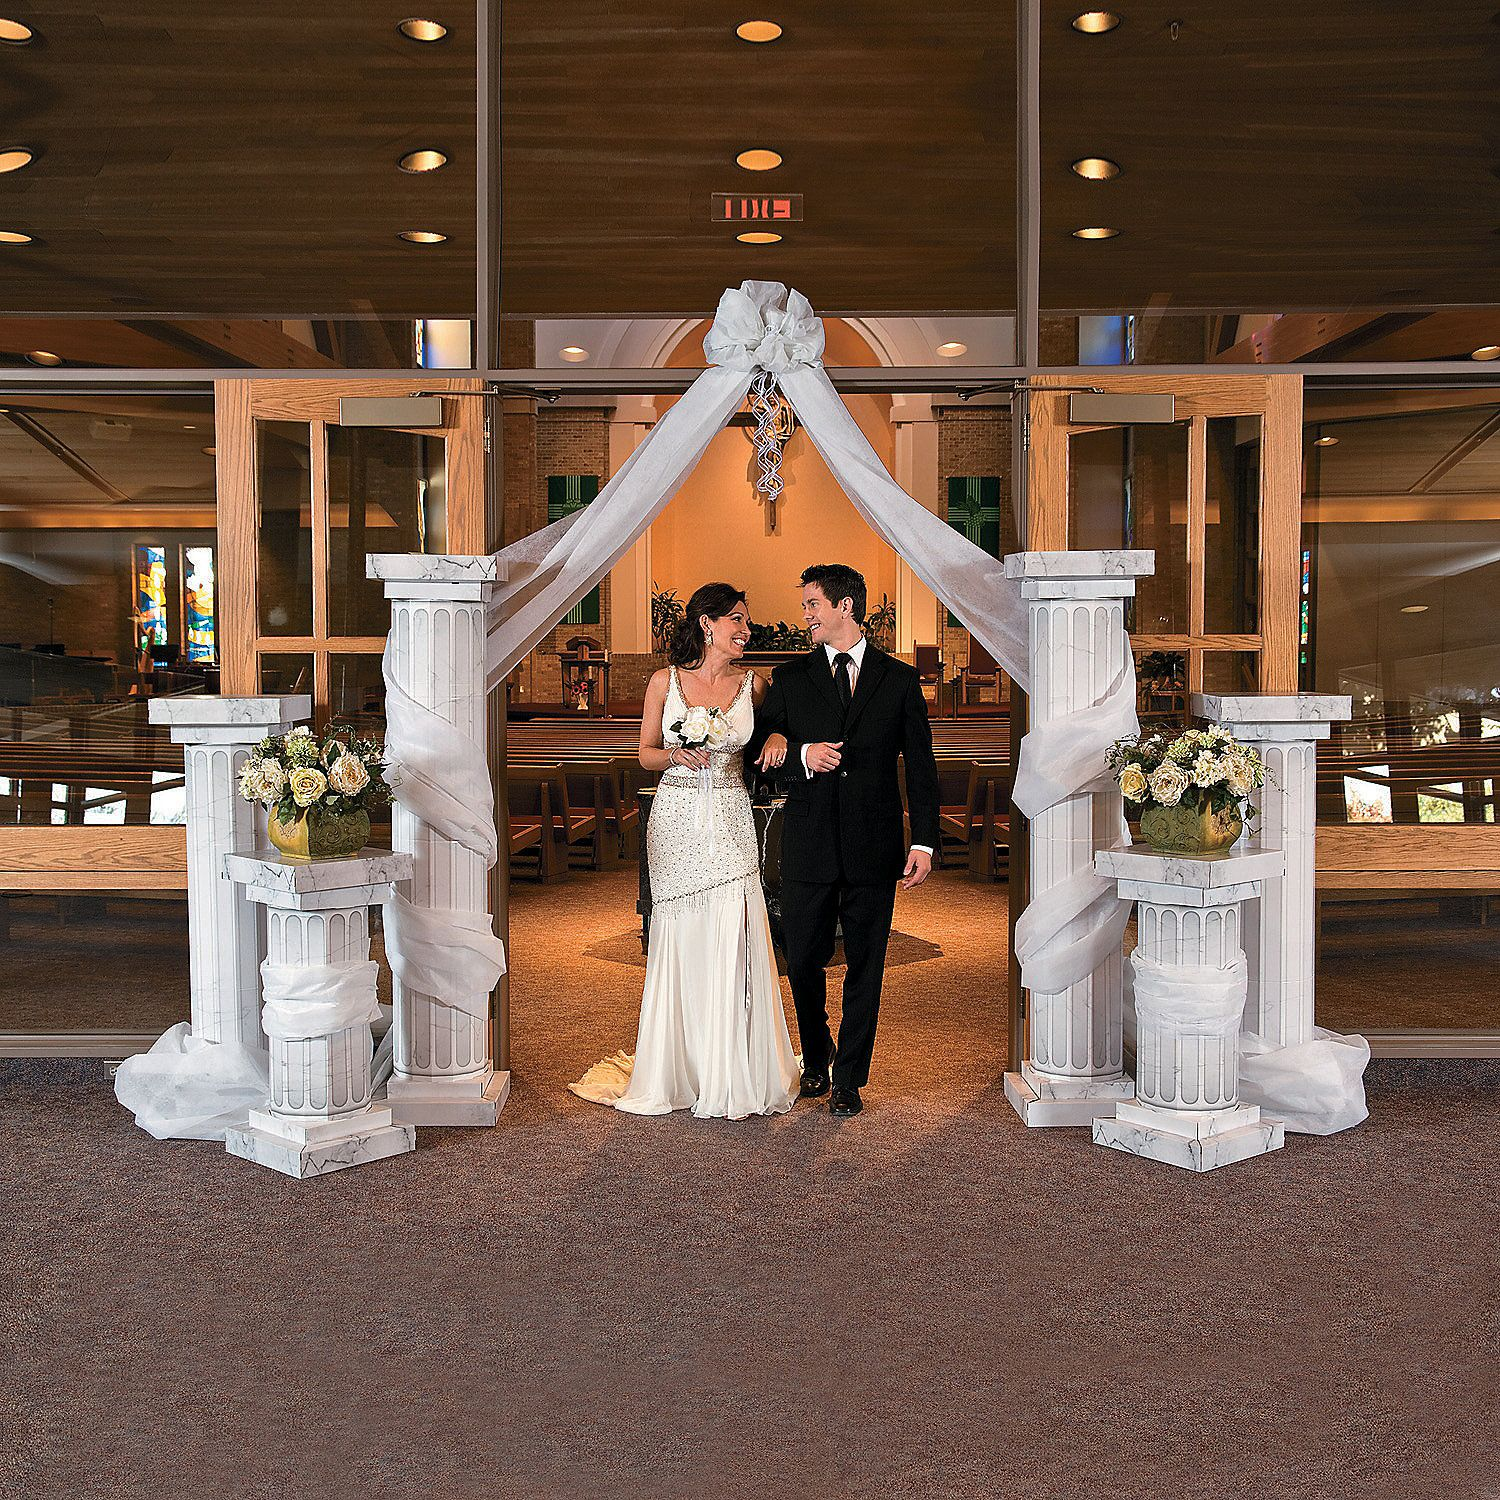 Columns For Decorations Wedding Columns Gossamer Draping Get The Look Of Your Dreams